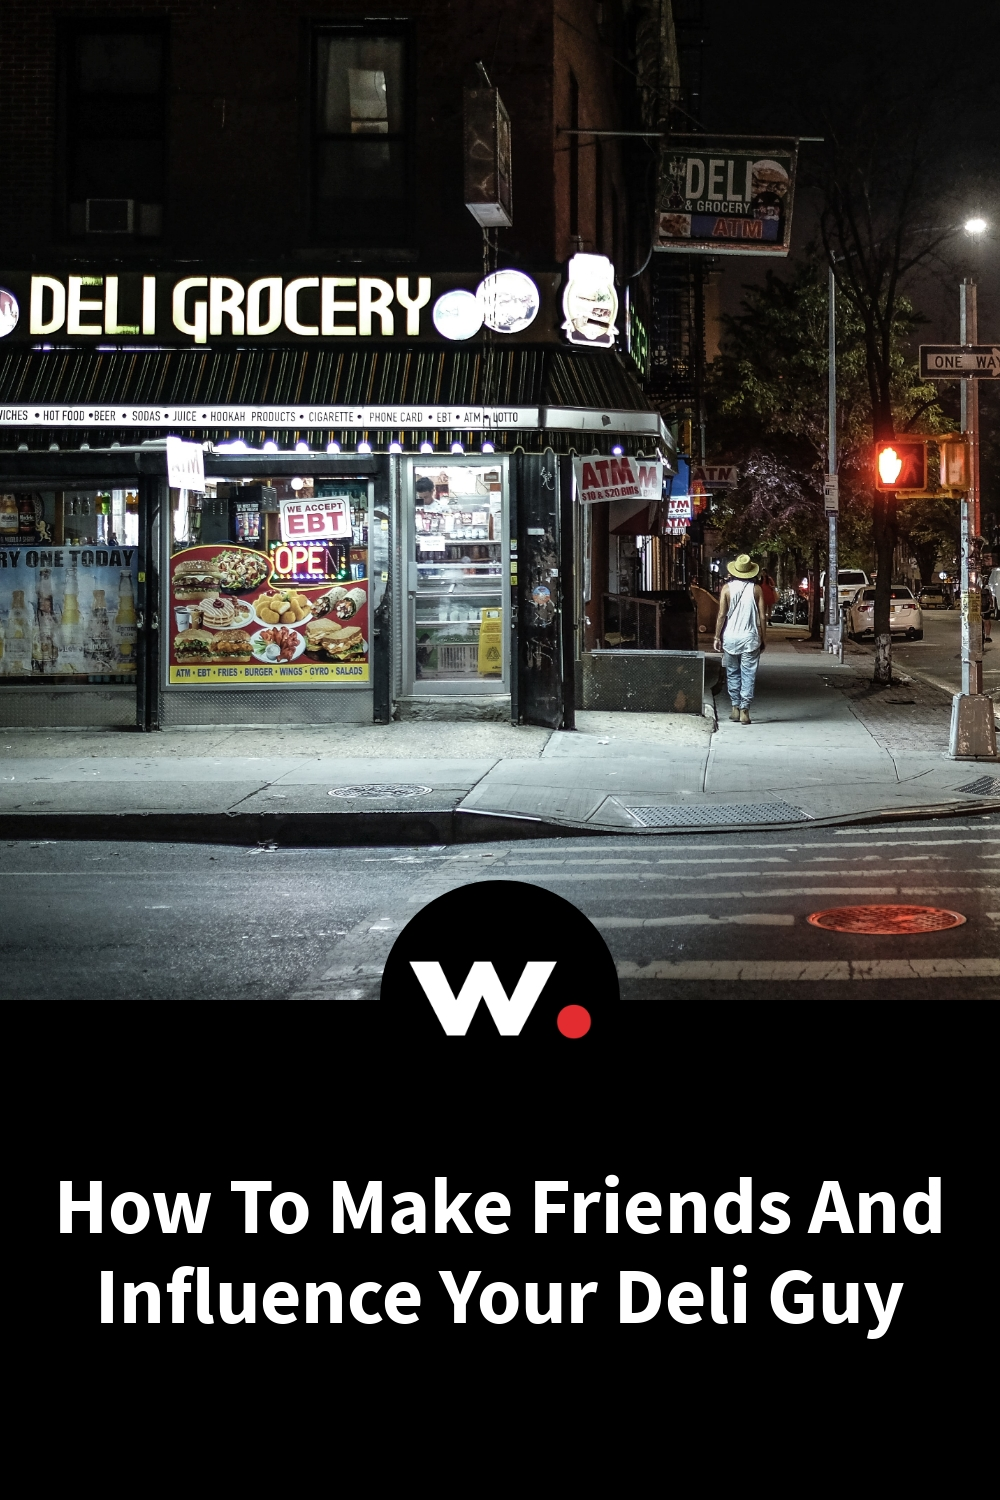 How To Make Friends And Influence Your Deli Guy